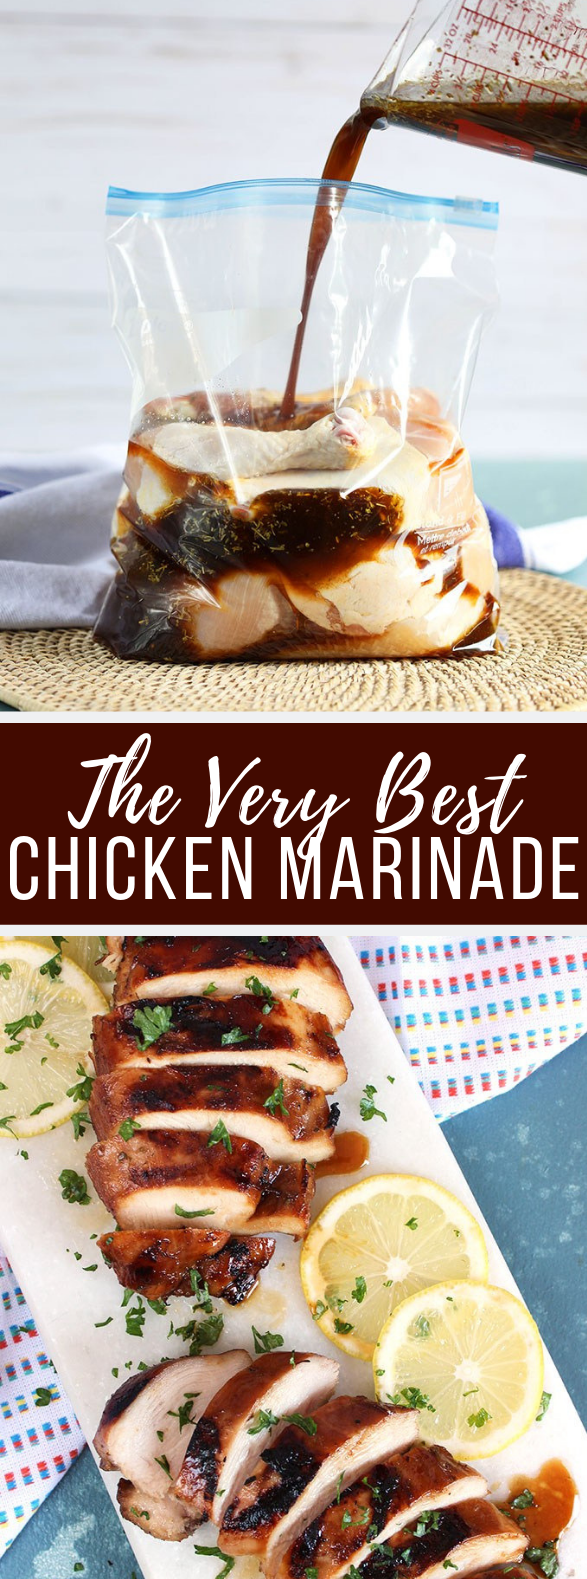 THE VERY BEST CHICKEN MARINADE RECIPE #dinner #grilledchicken